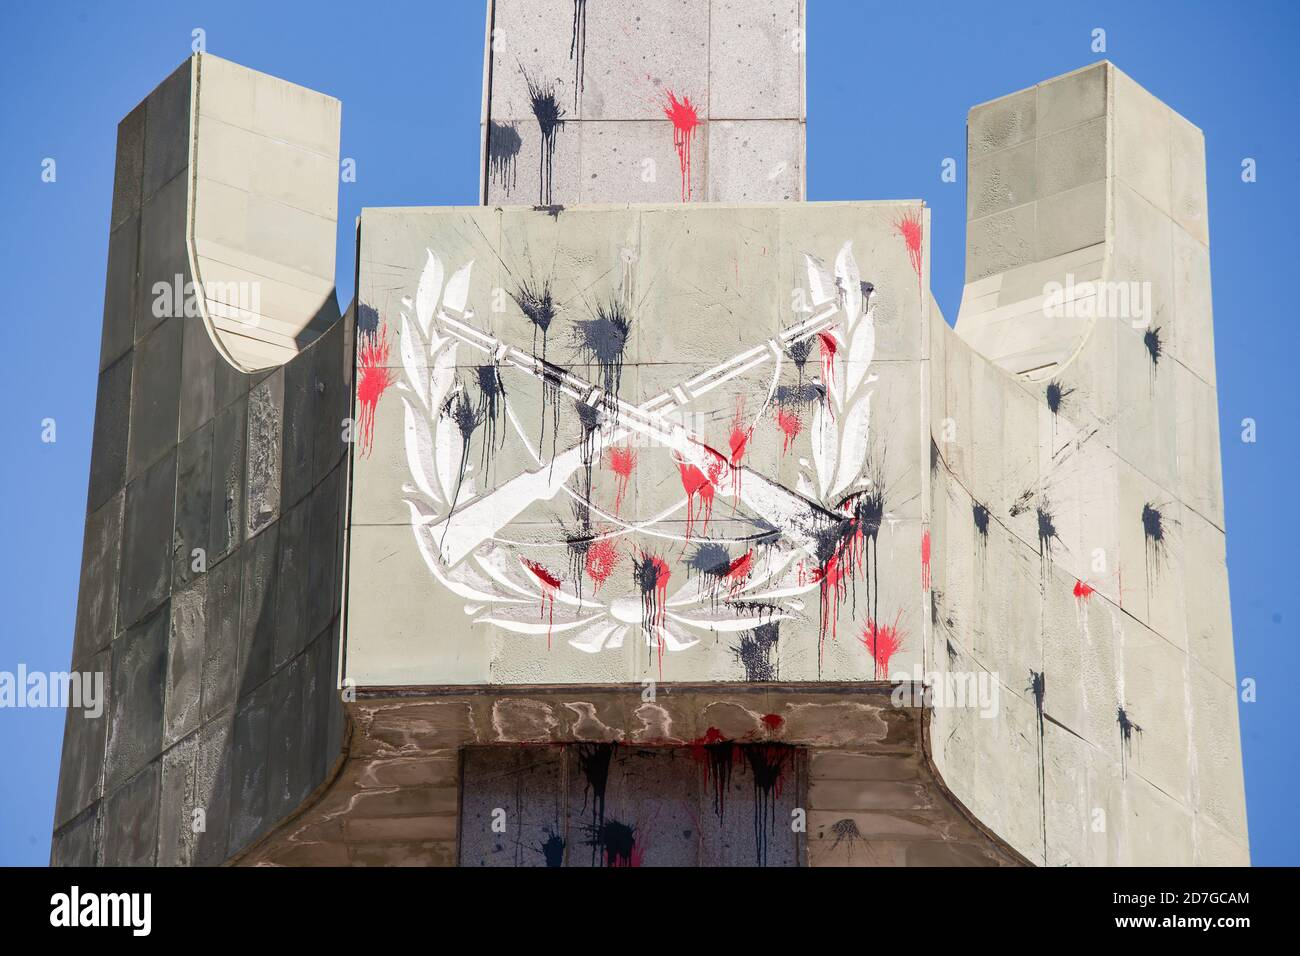 SANTIAGO, CHILE-OCTOBER 18, 2020 - Monument to the Martyrs of the Carabineros (Chilean Police) vandalized during a year of protests by the social outb Stock Photo